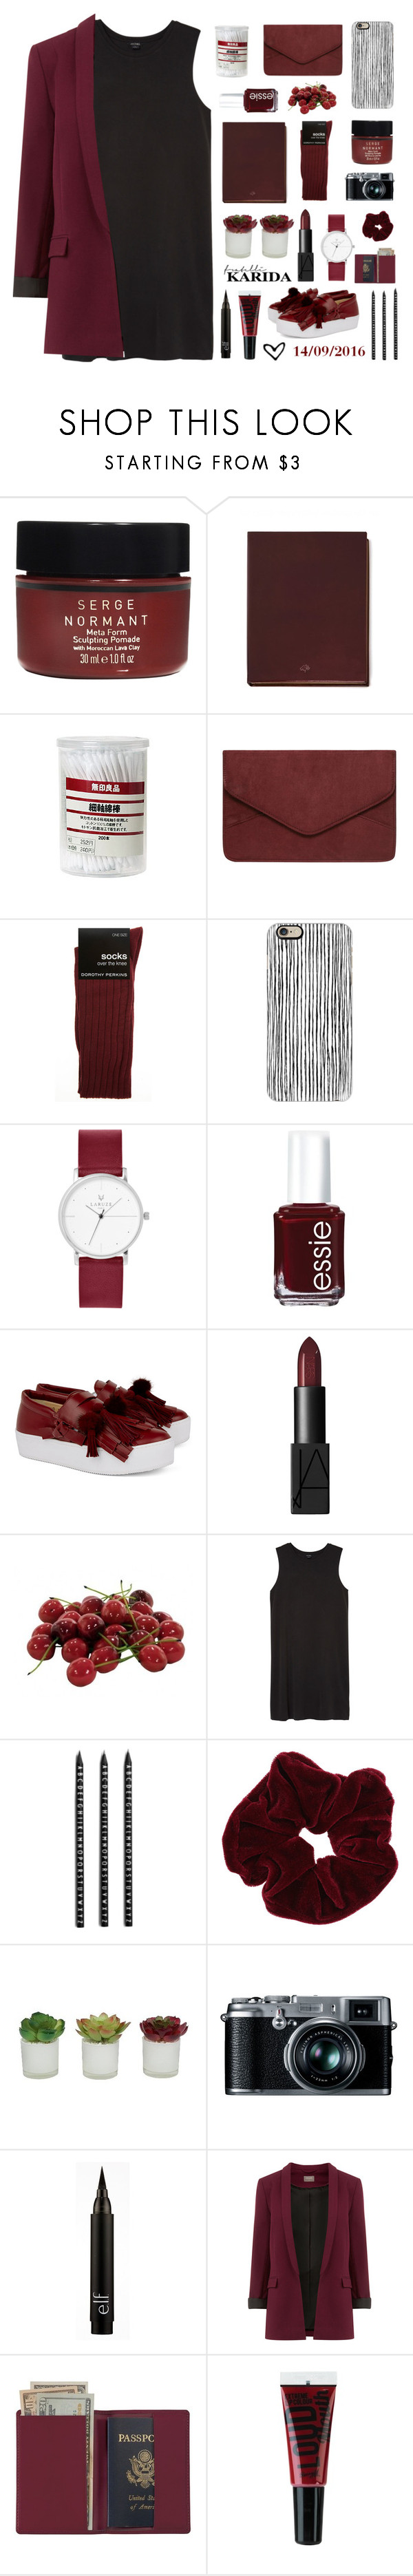 """""""Untitled #74"""" by evaairedio ❤ liked on Polyvore featuring Serge Normant, Mulberry, Muji, Dorothy Perkins, Casetify, Essie, N°21, NARS Cosmetics, INC International Concepts and Monki"""